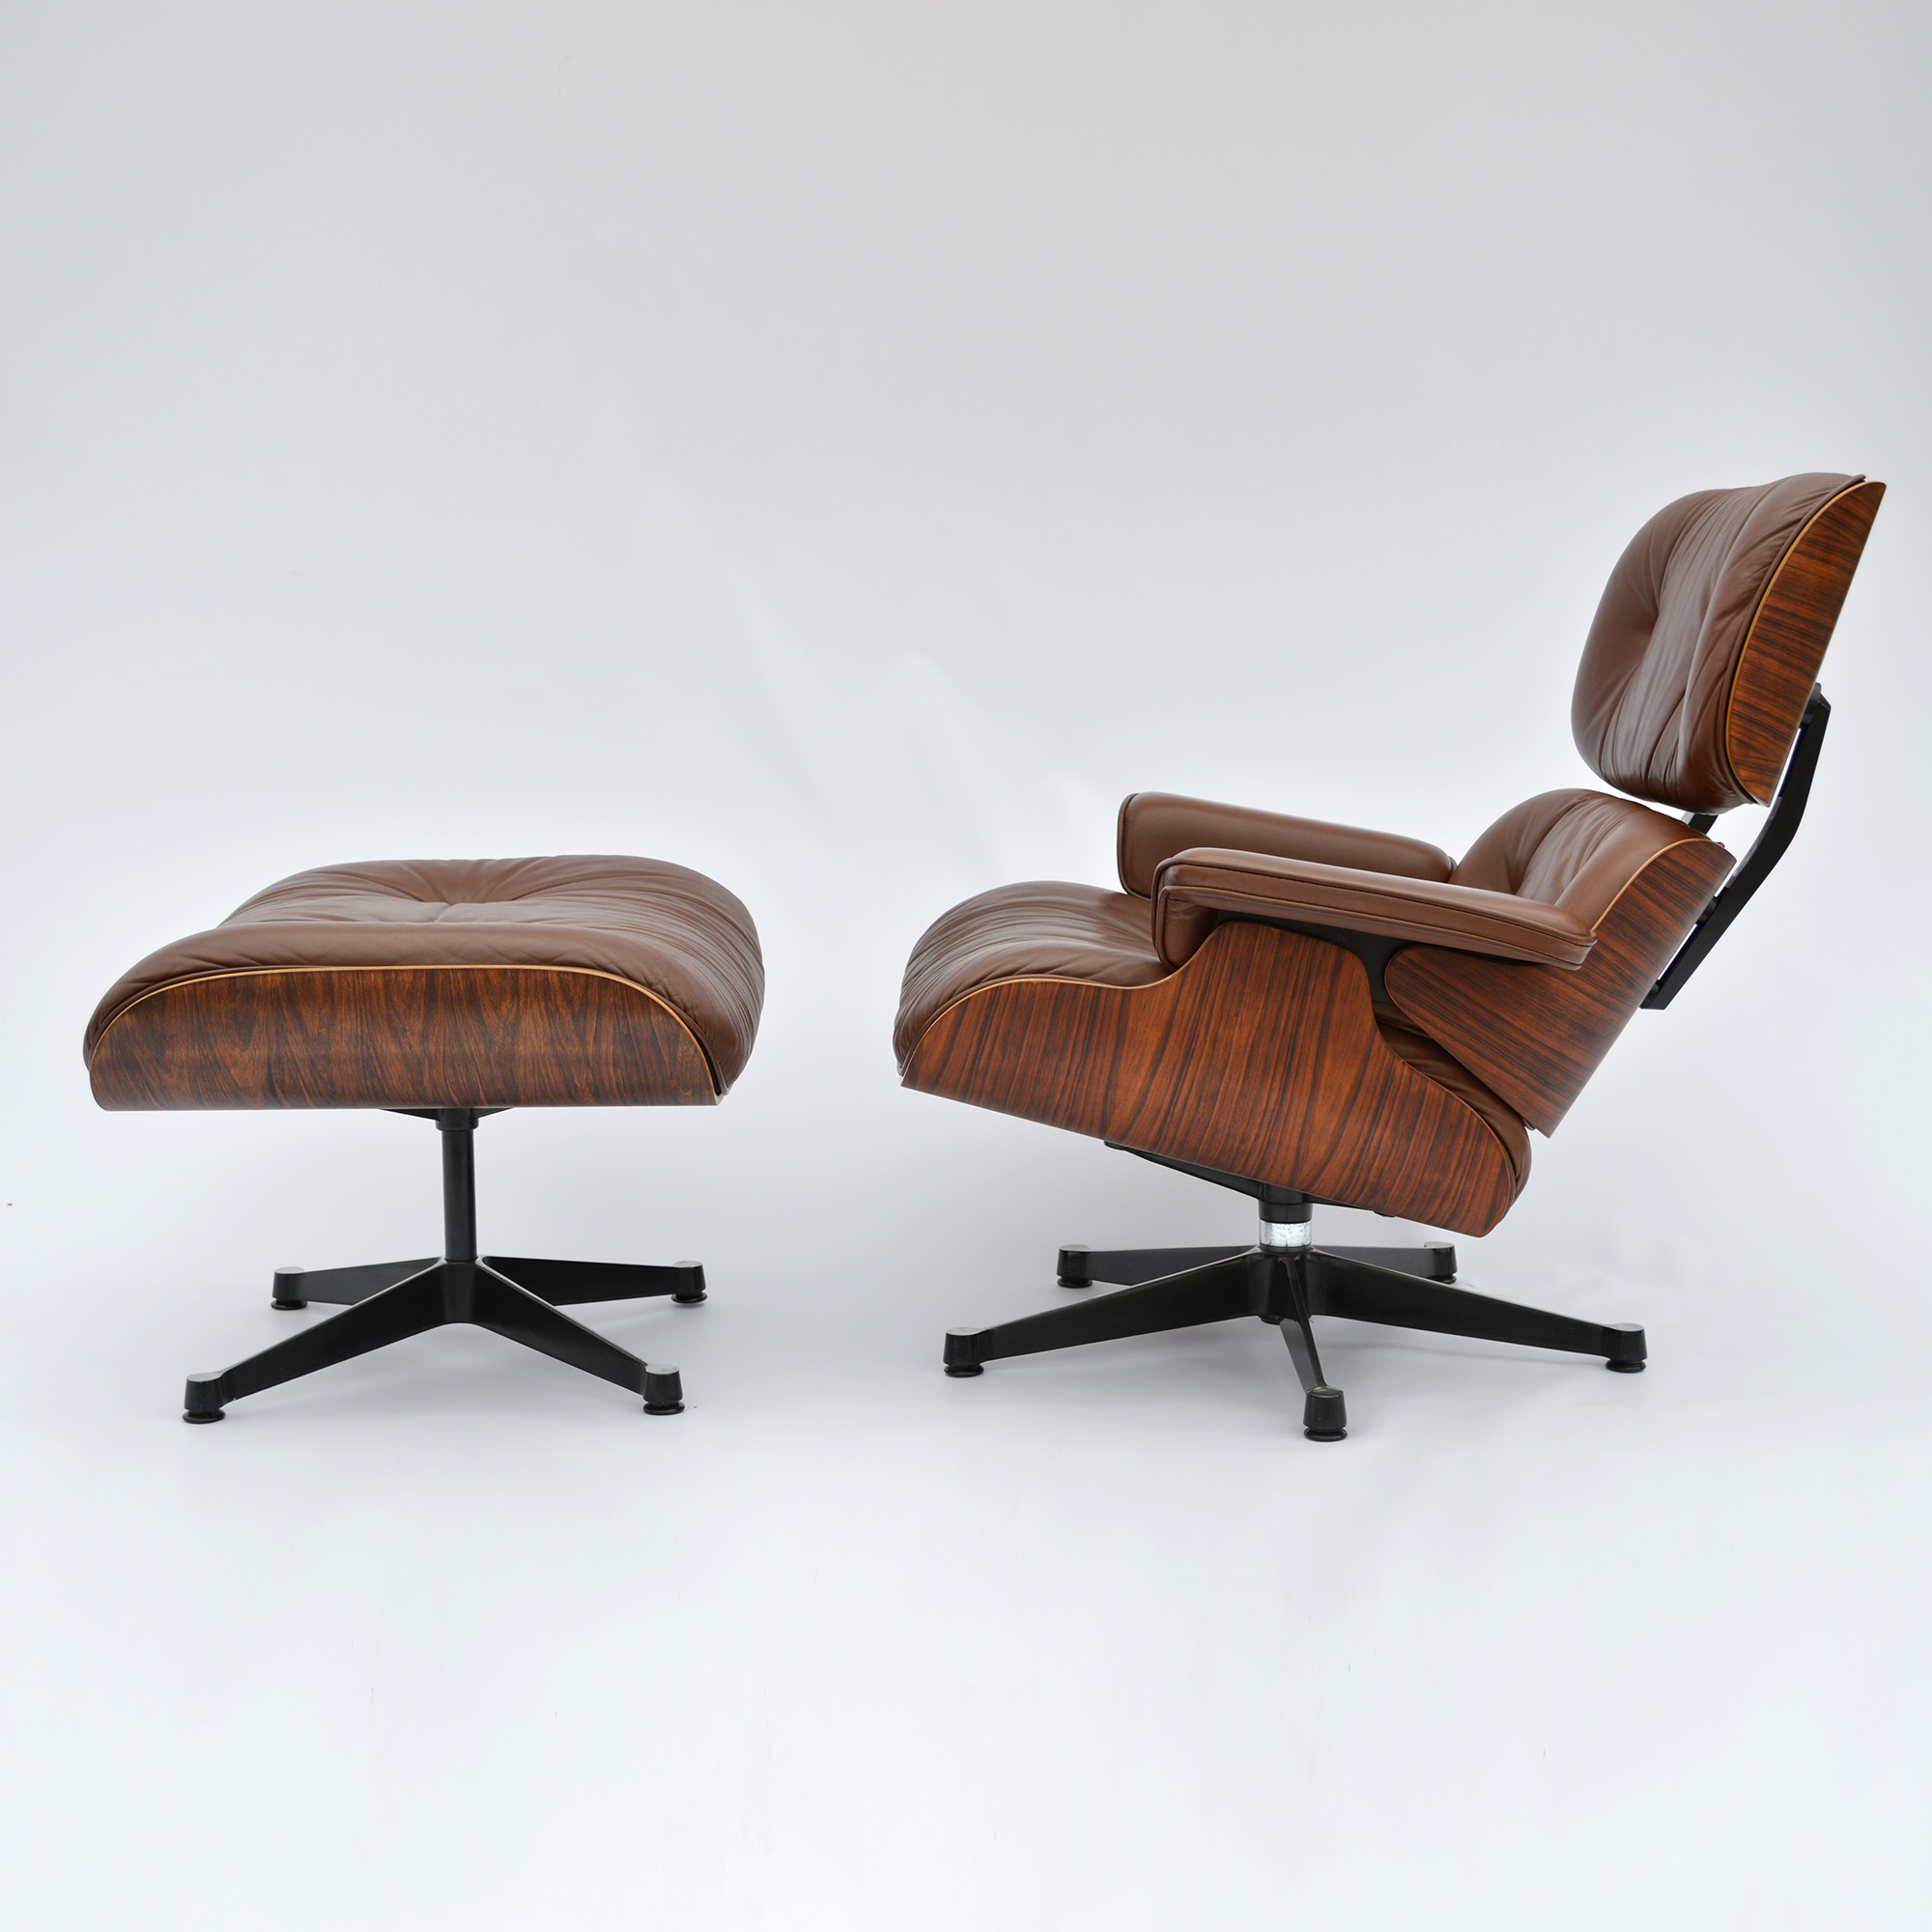 Herman Miller By Vitra Eames Lounge Chair Ottoman 1977 Good Looking